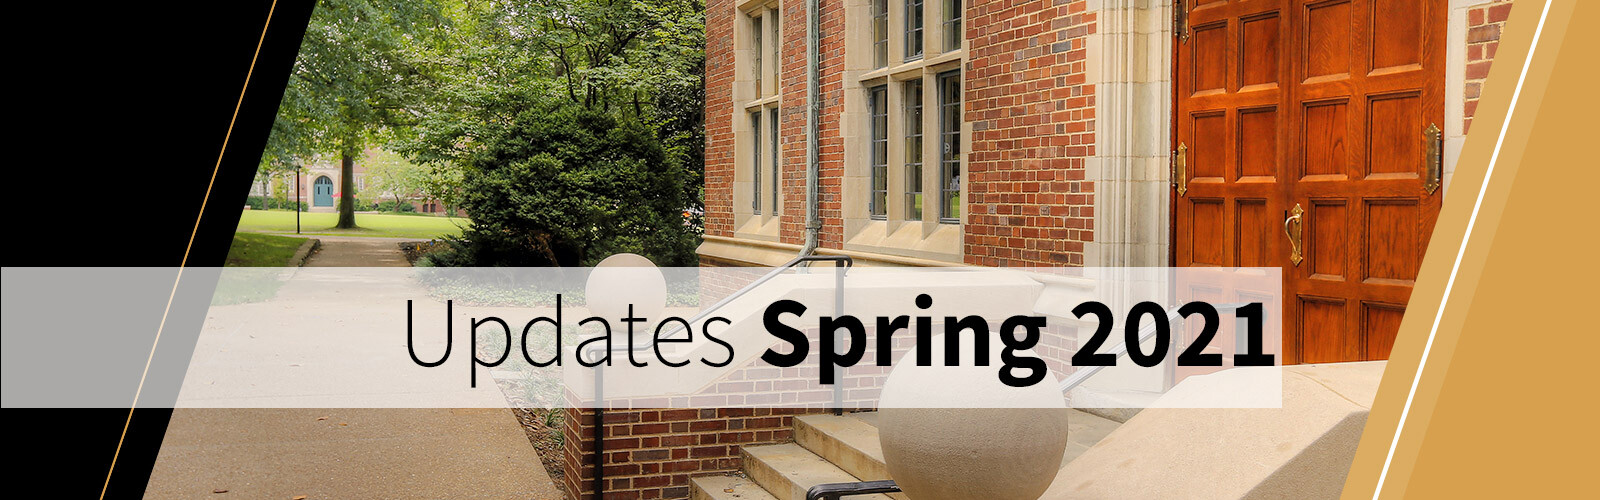 Graduate students: stay informed on the latest updates about the spring semester